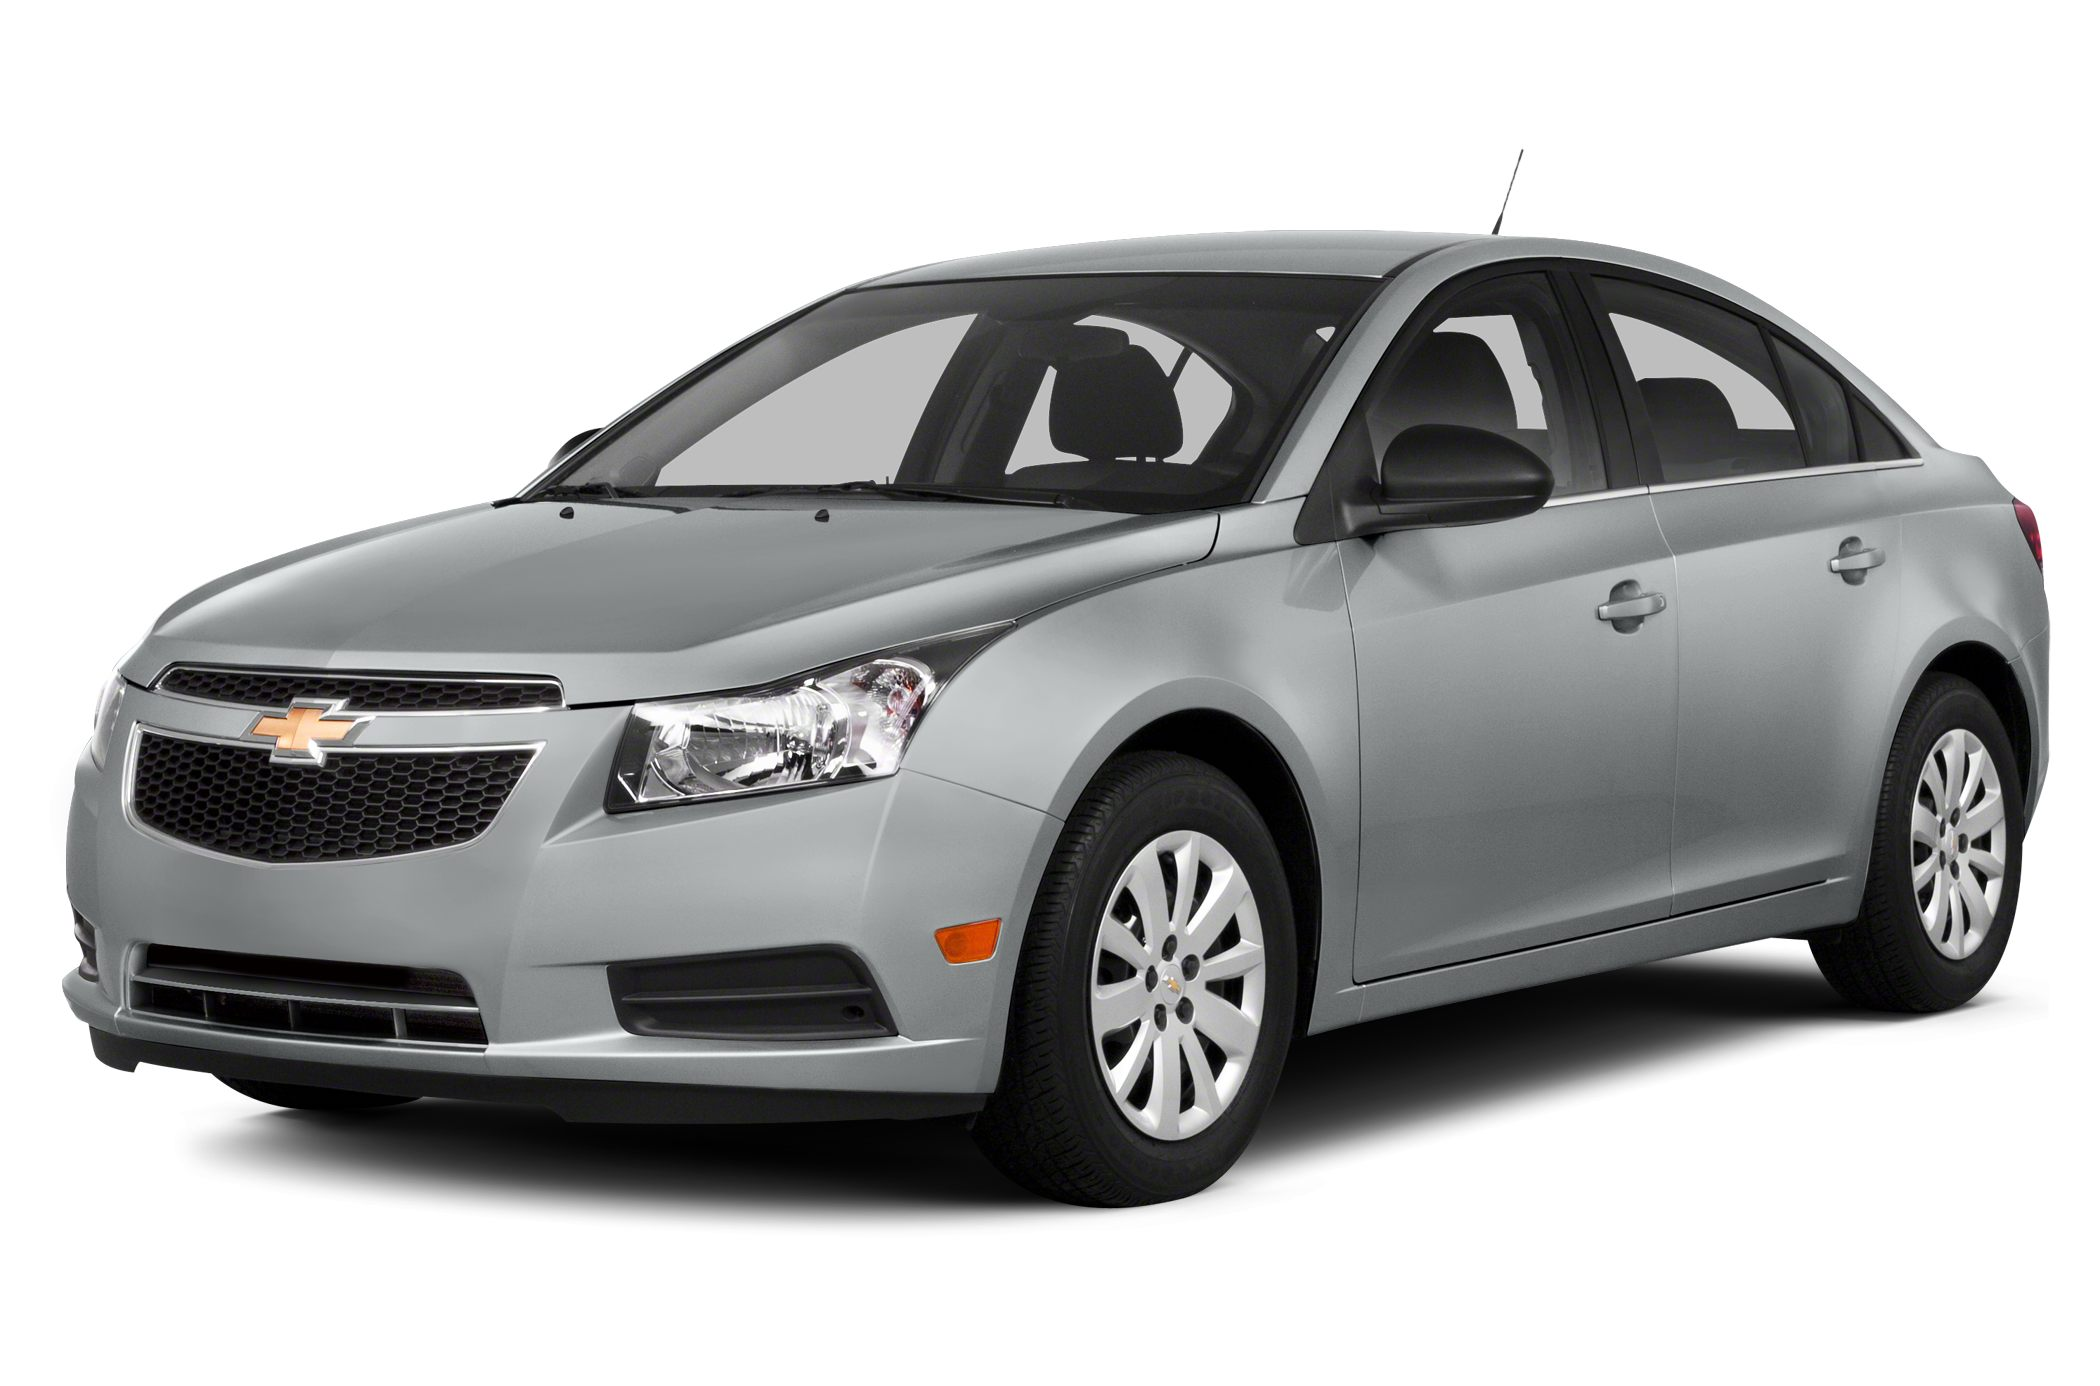 2014 Chevrolet Cruze 2LT Sedan for sale in Whiteville for $18,950 with 11,751 miles.